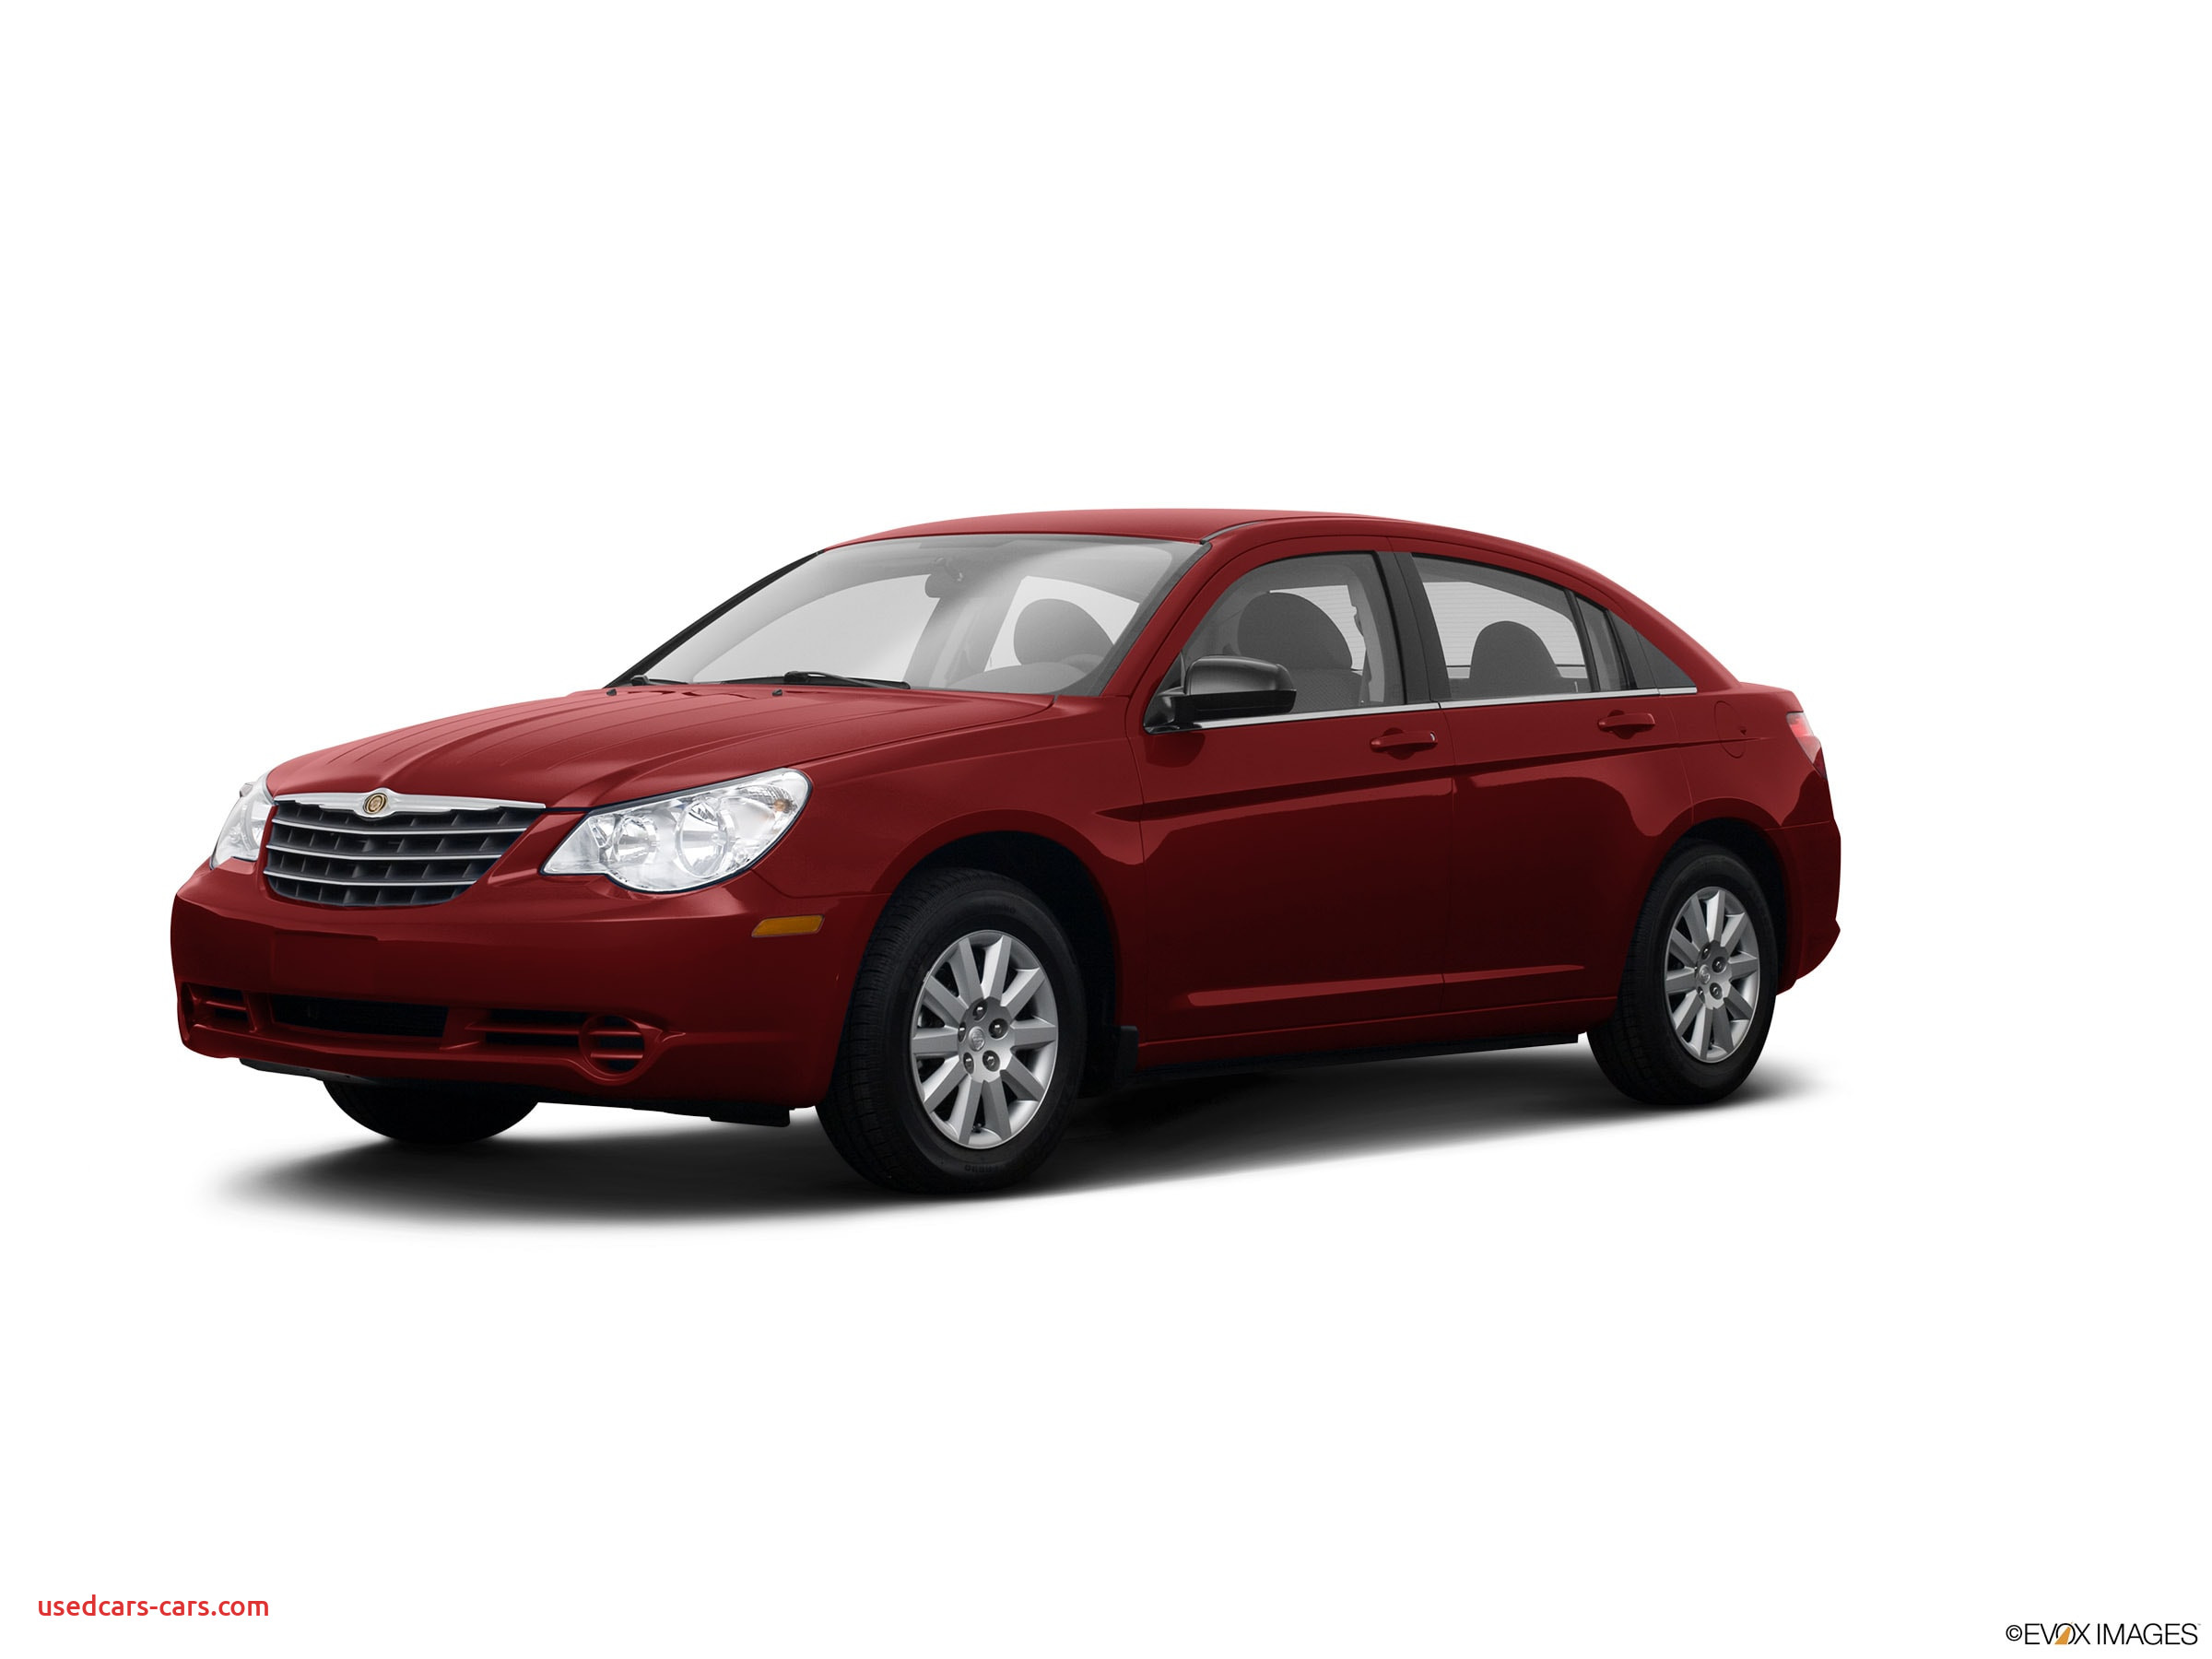 Used Cars Near Me Under 8000 New Cars Under 5000 Near Me